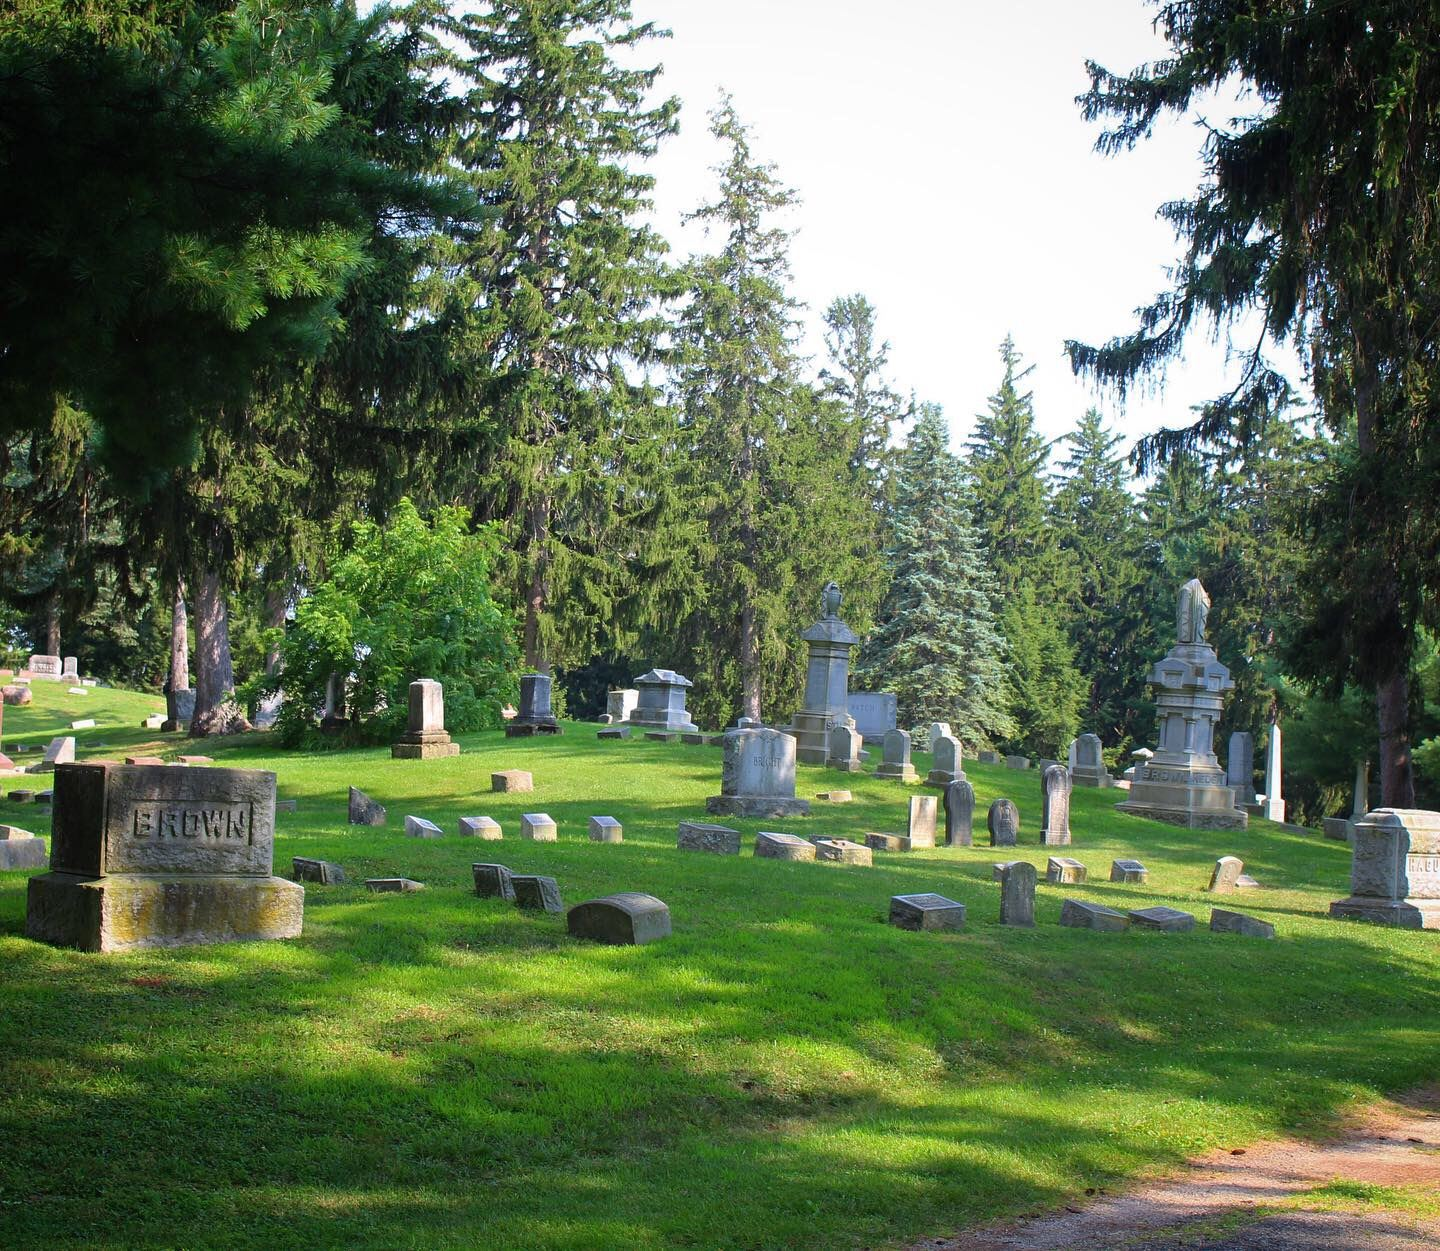 Wide view of Mount Evergreen Cemetery with old headstones, rolling hills, and tall trees